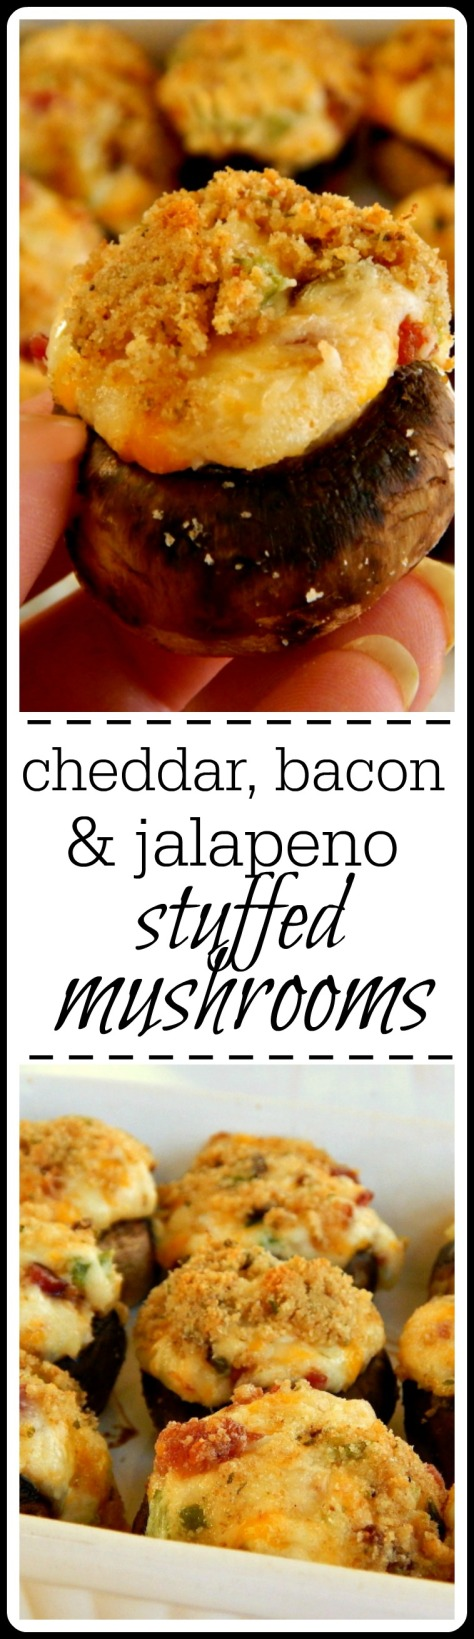 The best stuffed mushroom, ever! I mean, bacon! Creamy, cheesy and so much flavor.